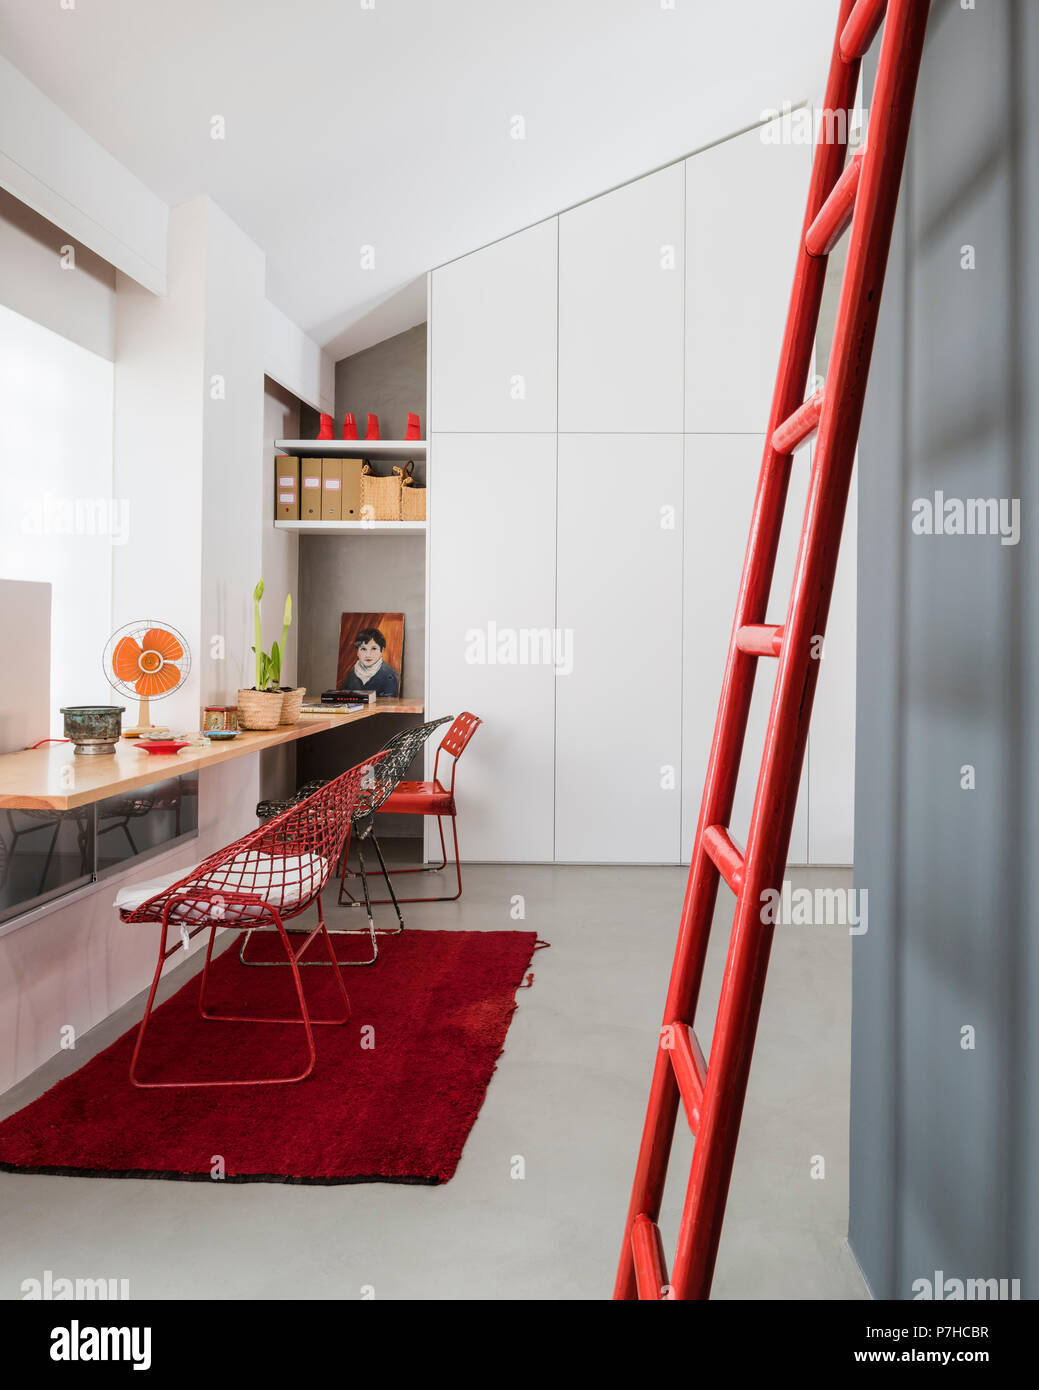 Wire basket chairs at timber work surface in loft style apartment. A red ladder leans in the foreground - Stock Image